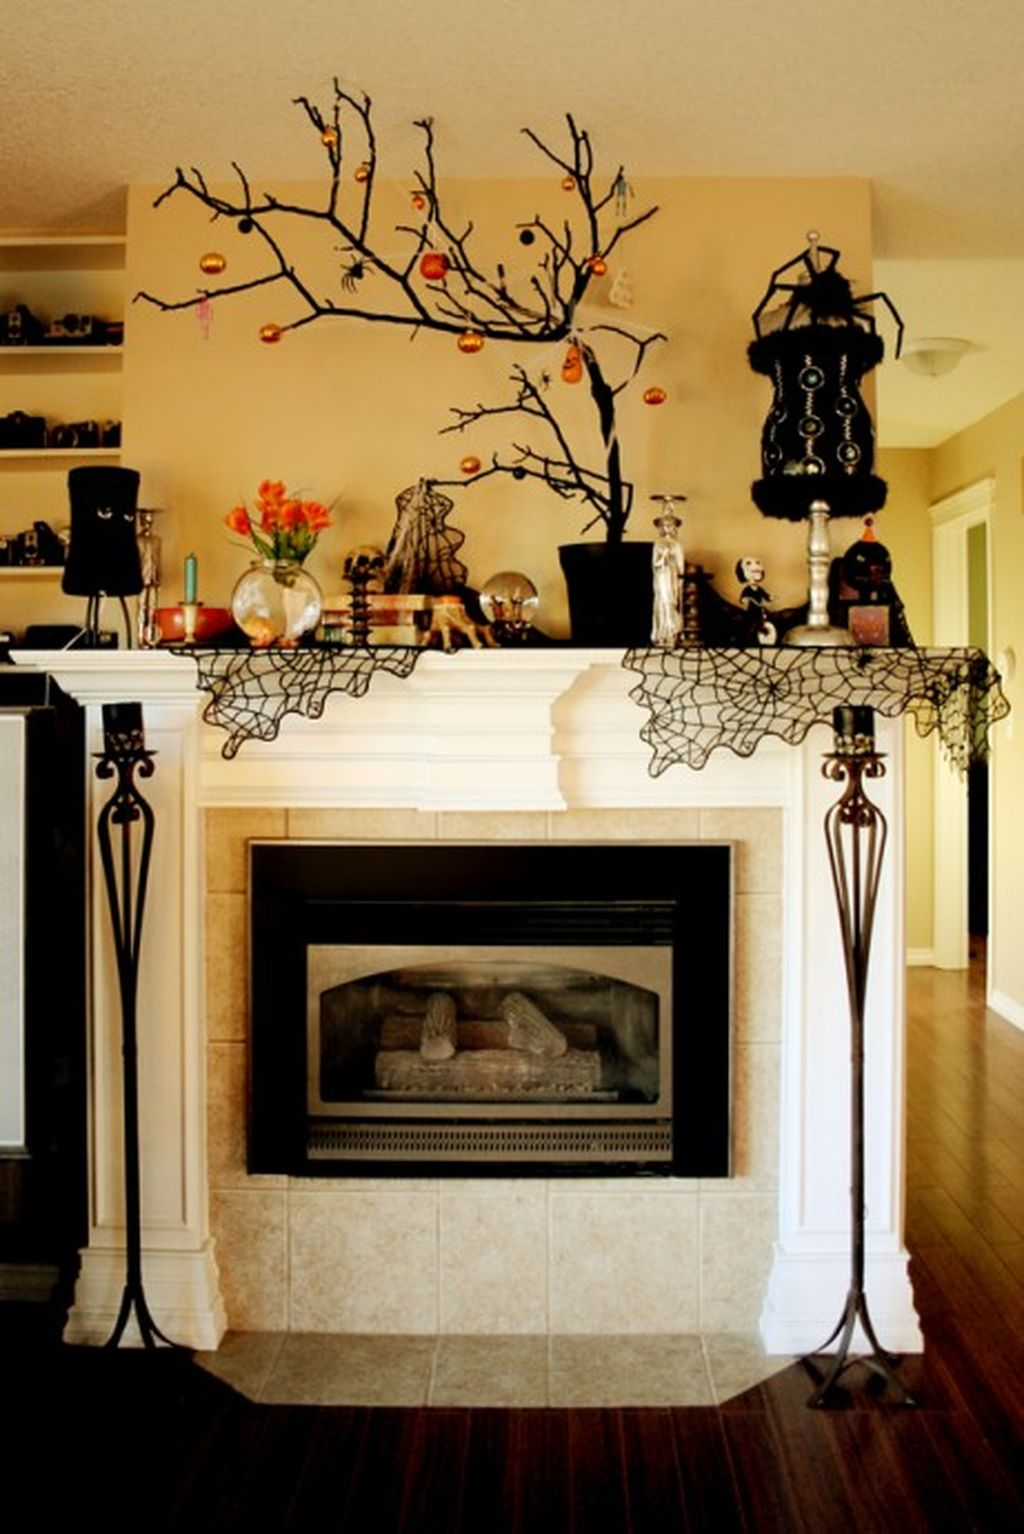 Scary But Classy Halloween Fireplace Decoration Ideas 24